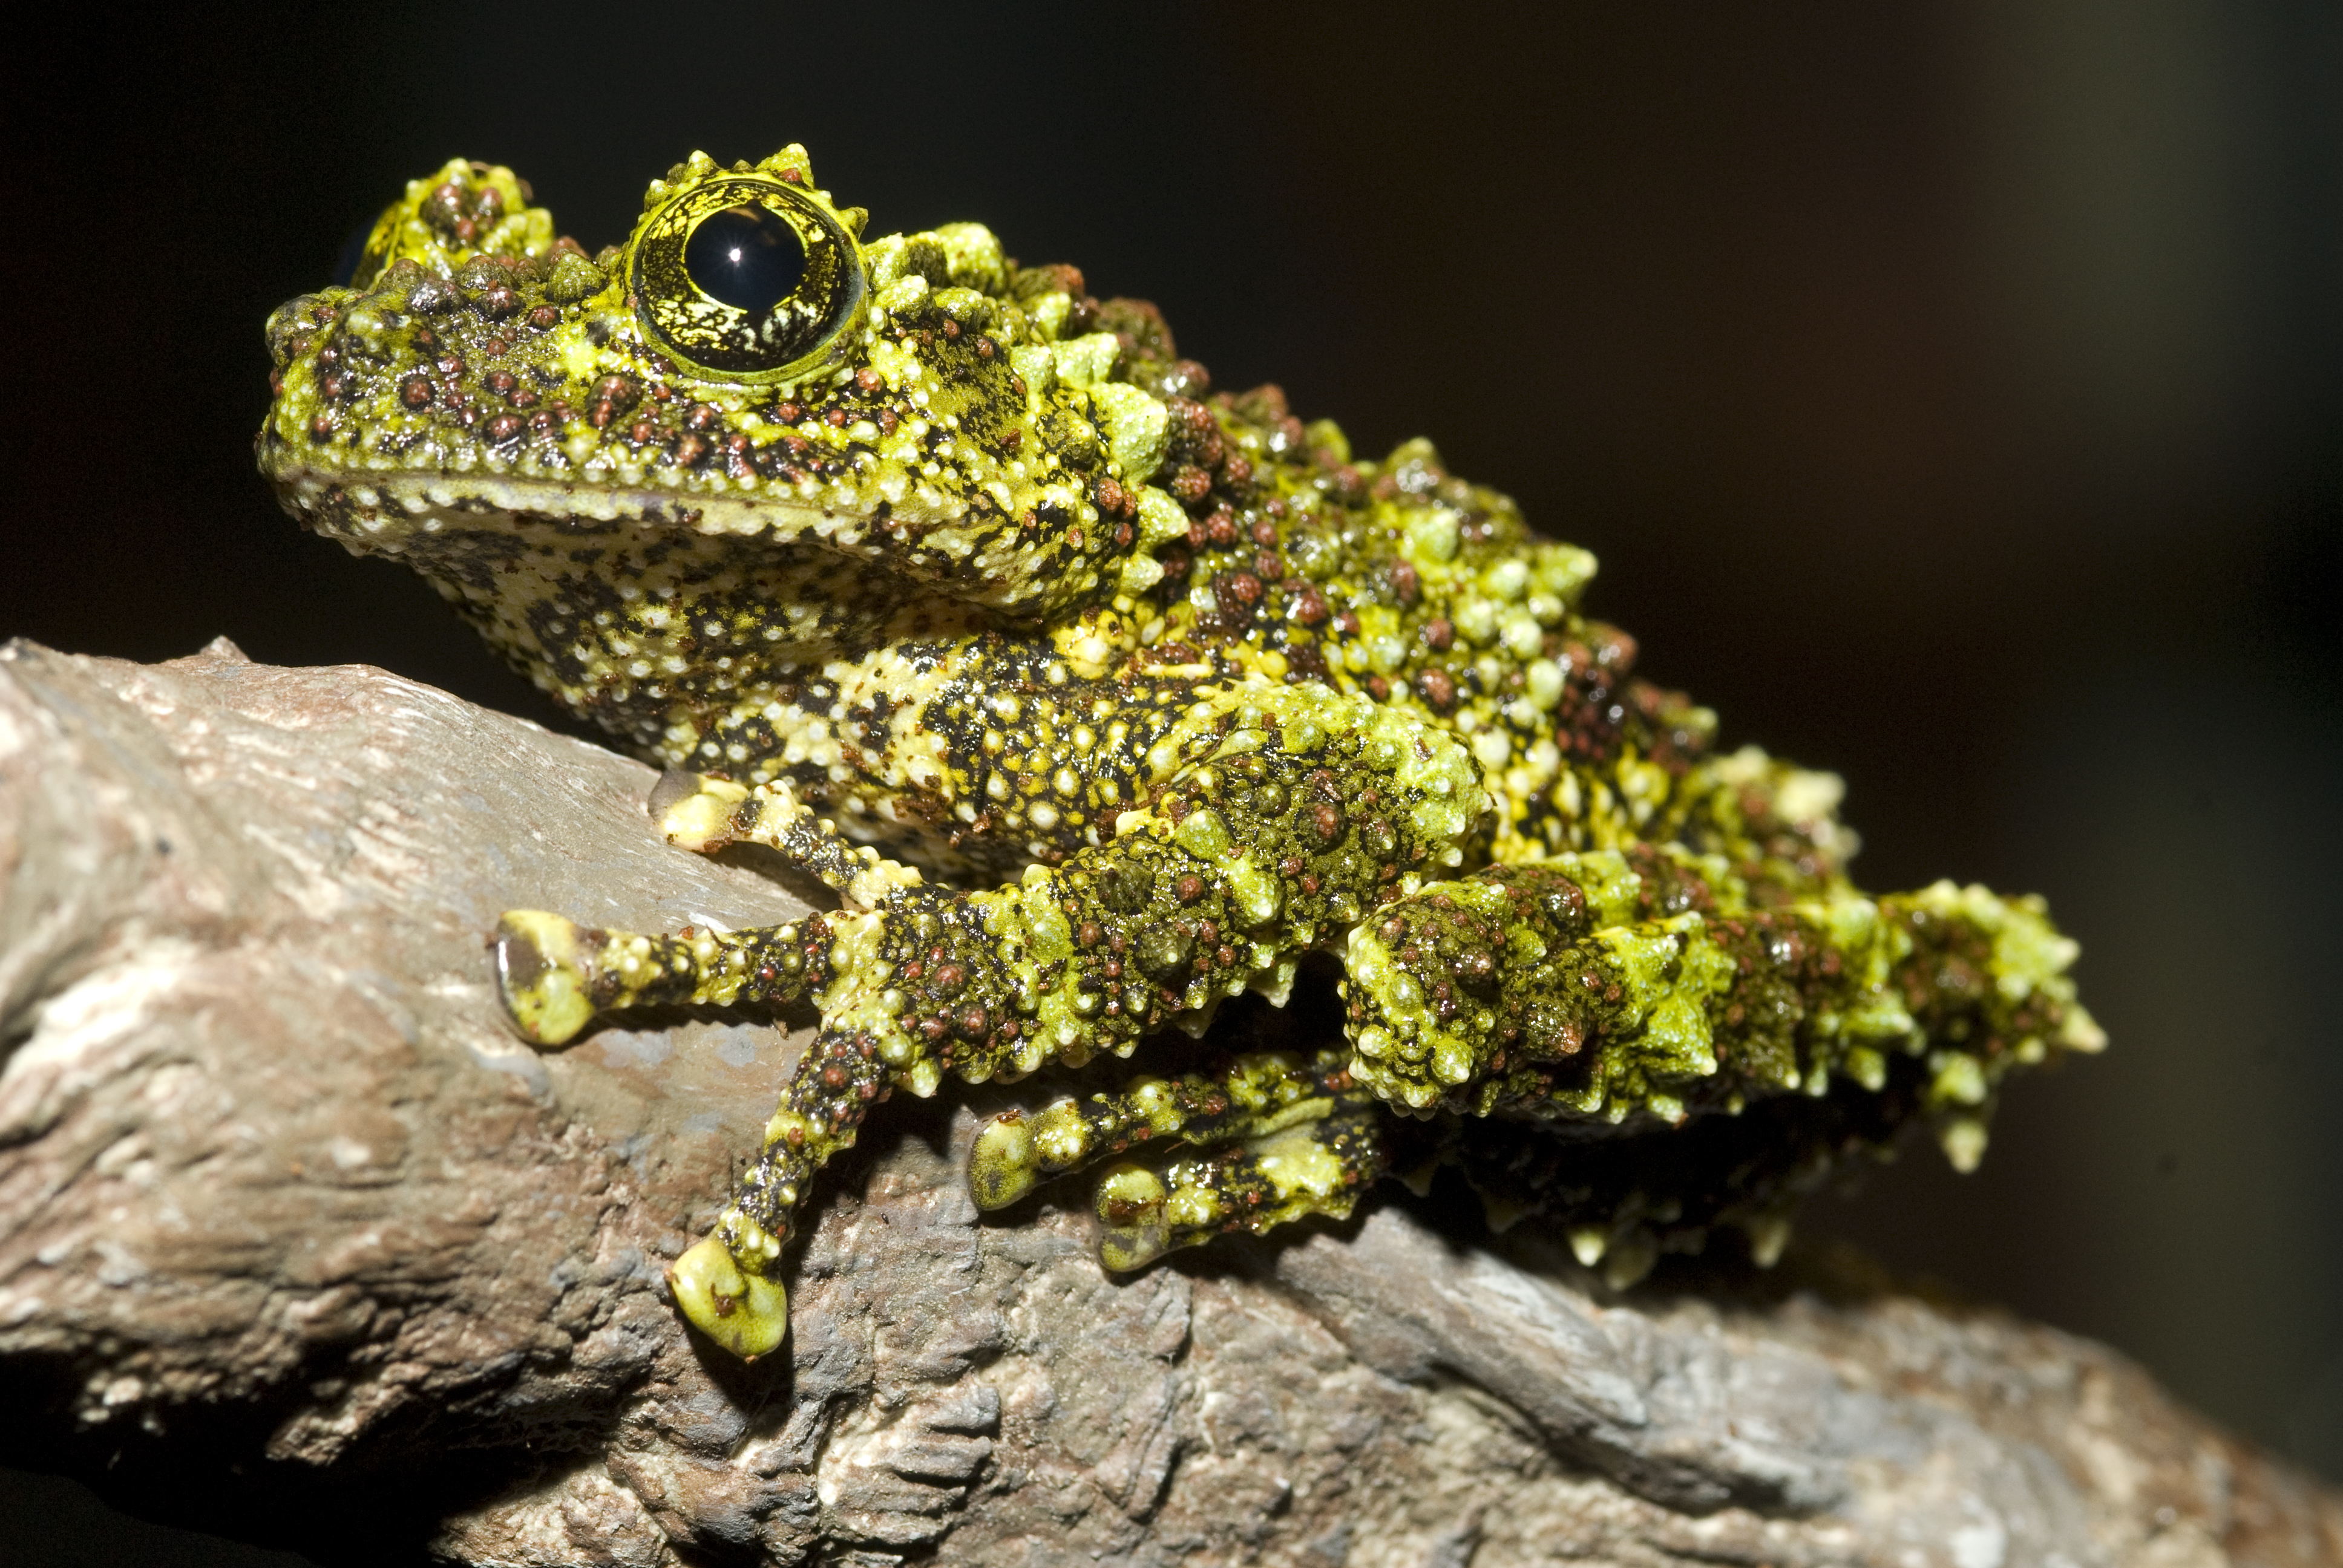 A vietnamese mossy frog